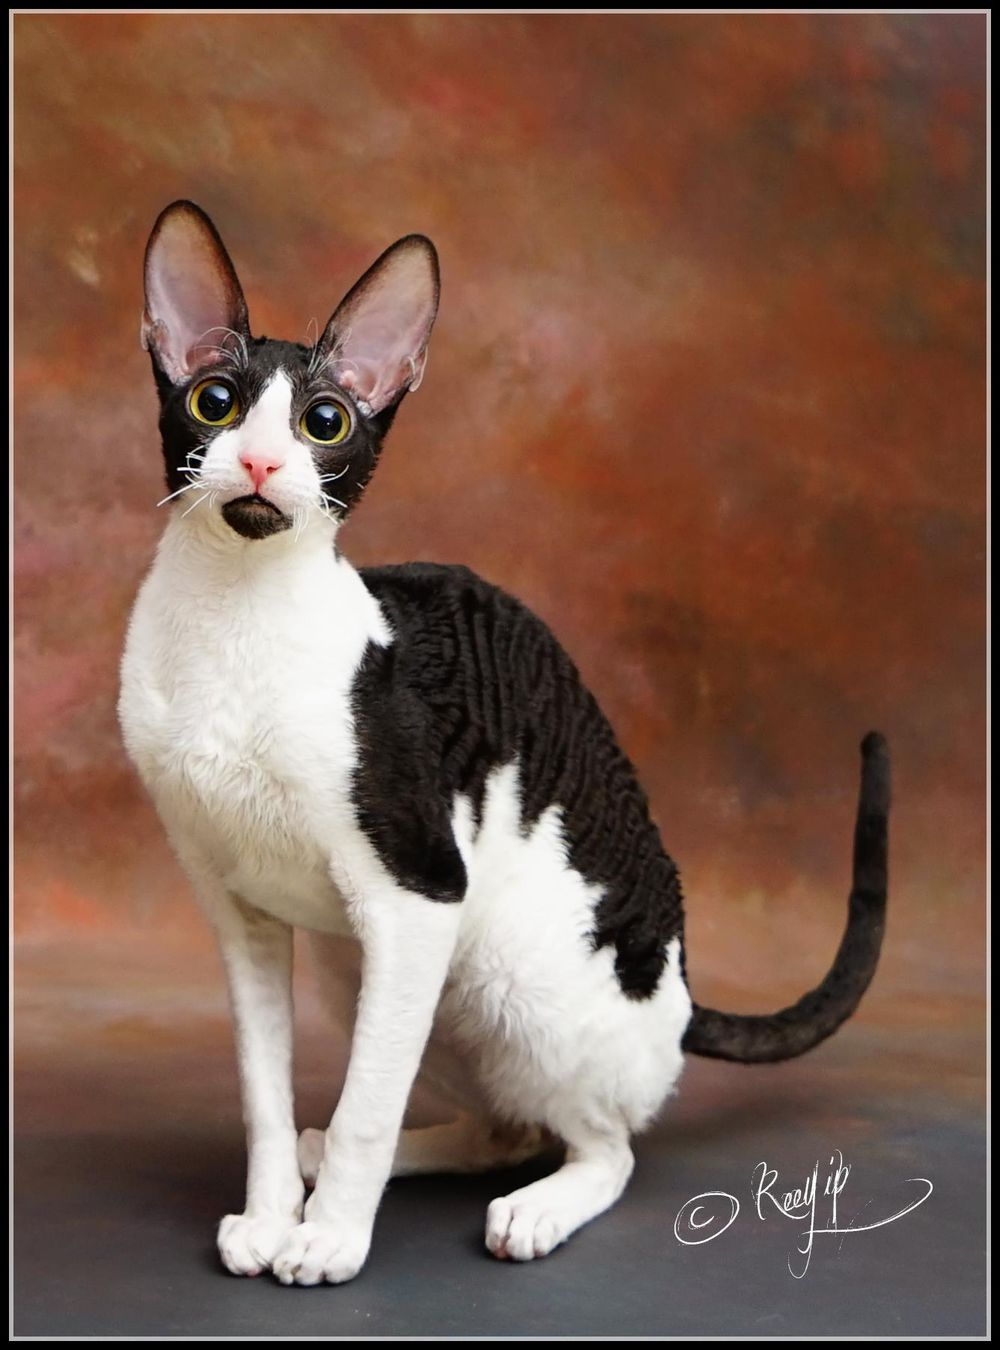 Cornish Rex Cat is a breed of domestic cat The Cornish Rex Cat